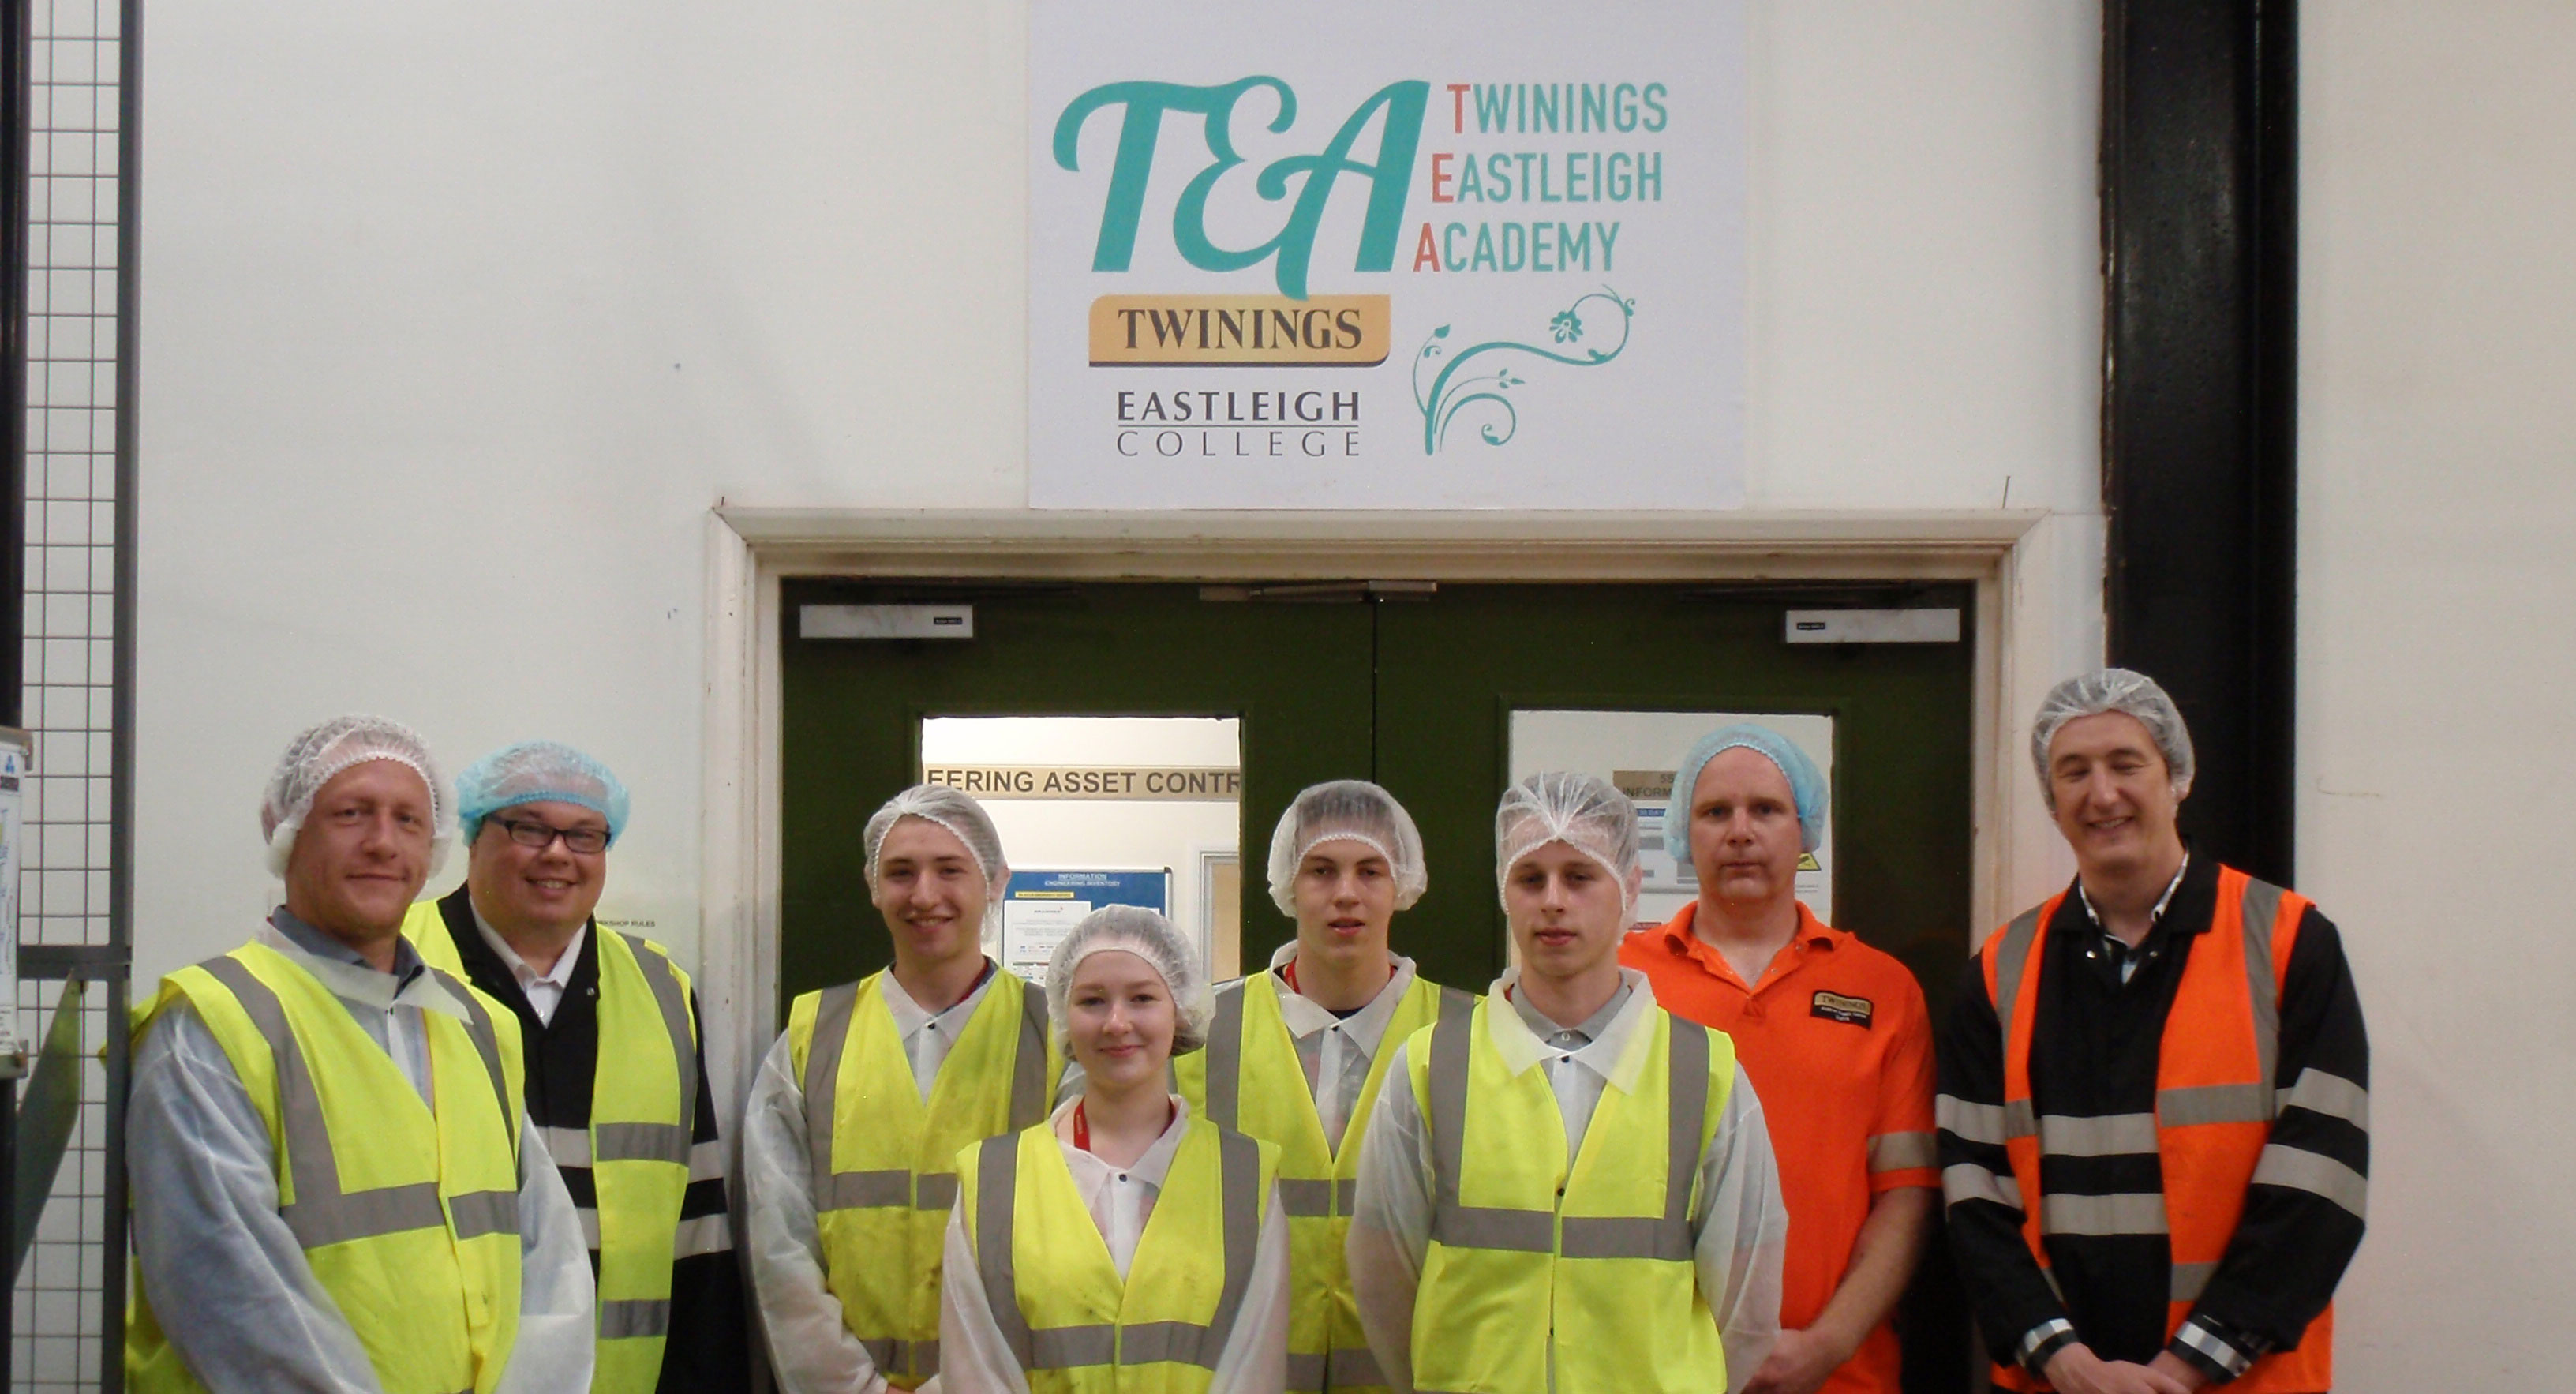 Eastleigh College and Twinings launch training academy